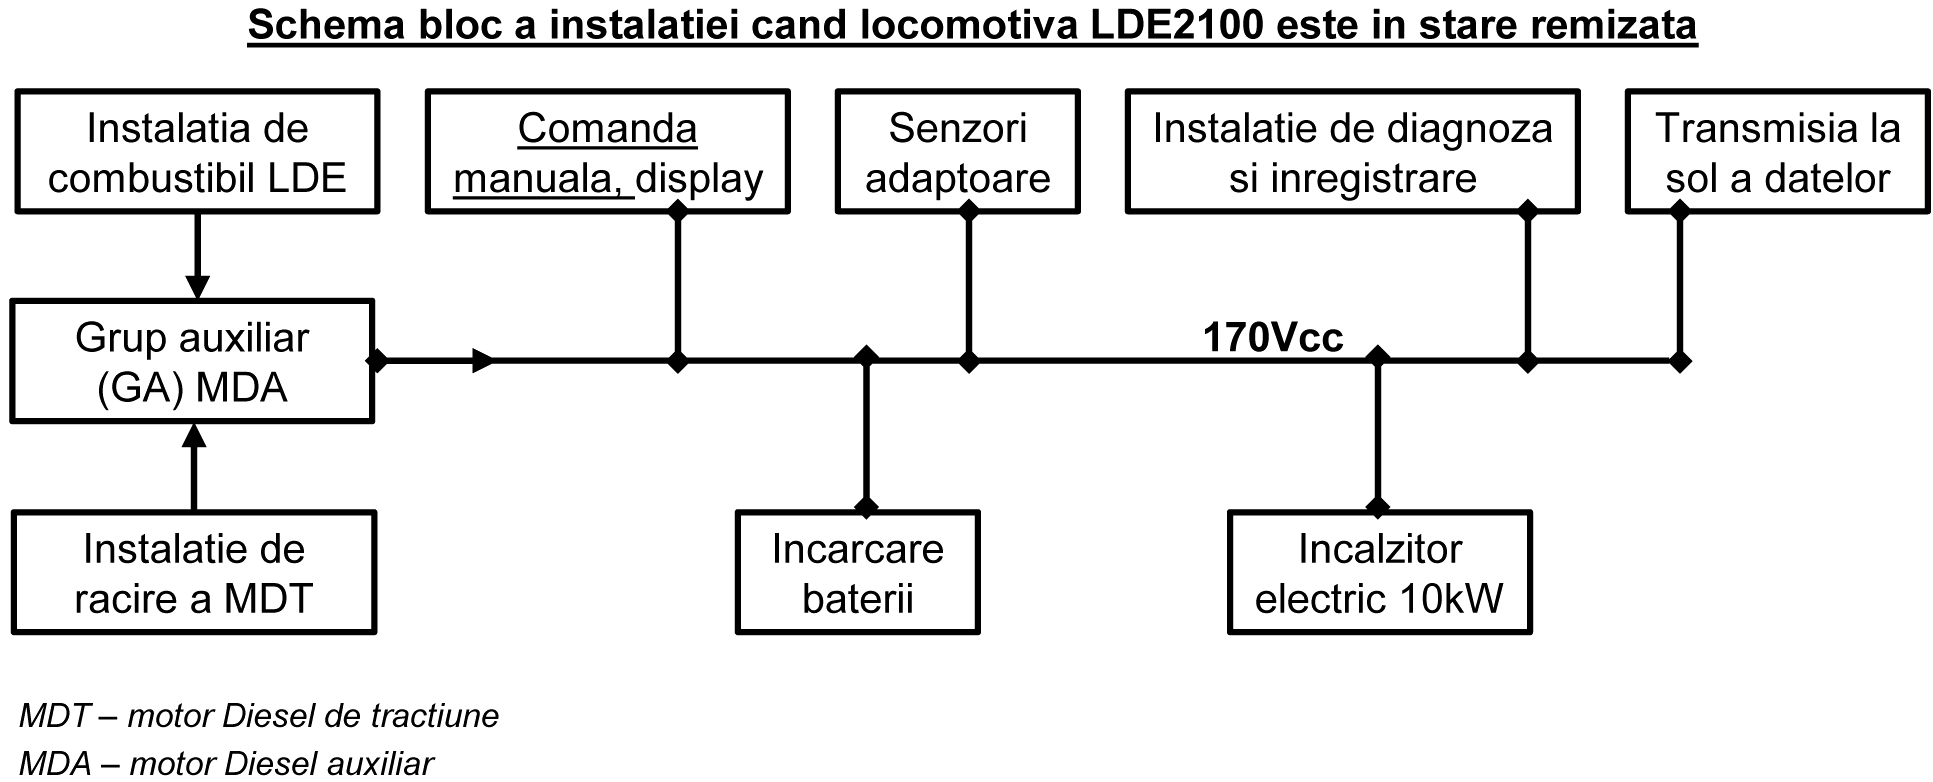 block diagram reduction examples and solutions how ssl certificates work system for decreasing the idle time of 2100 hp